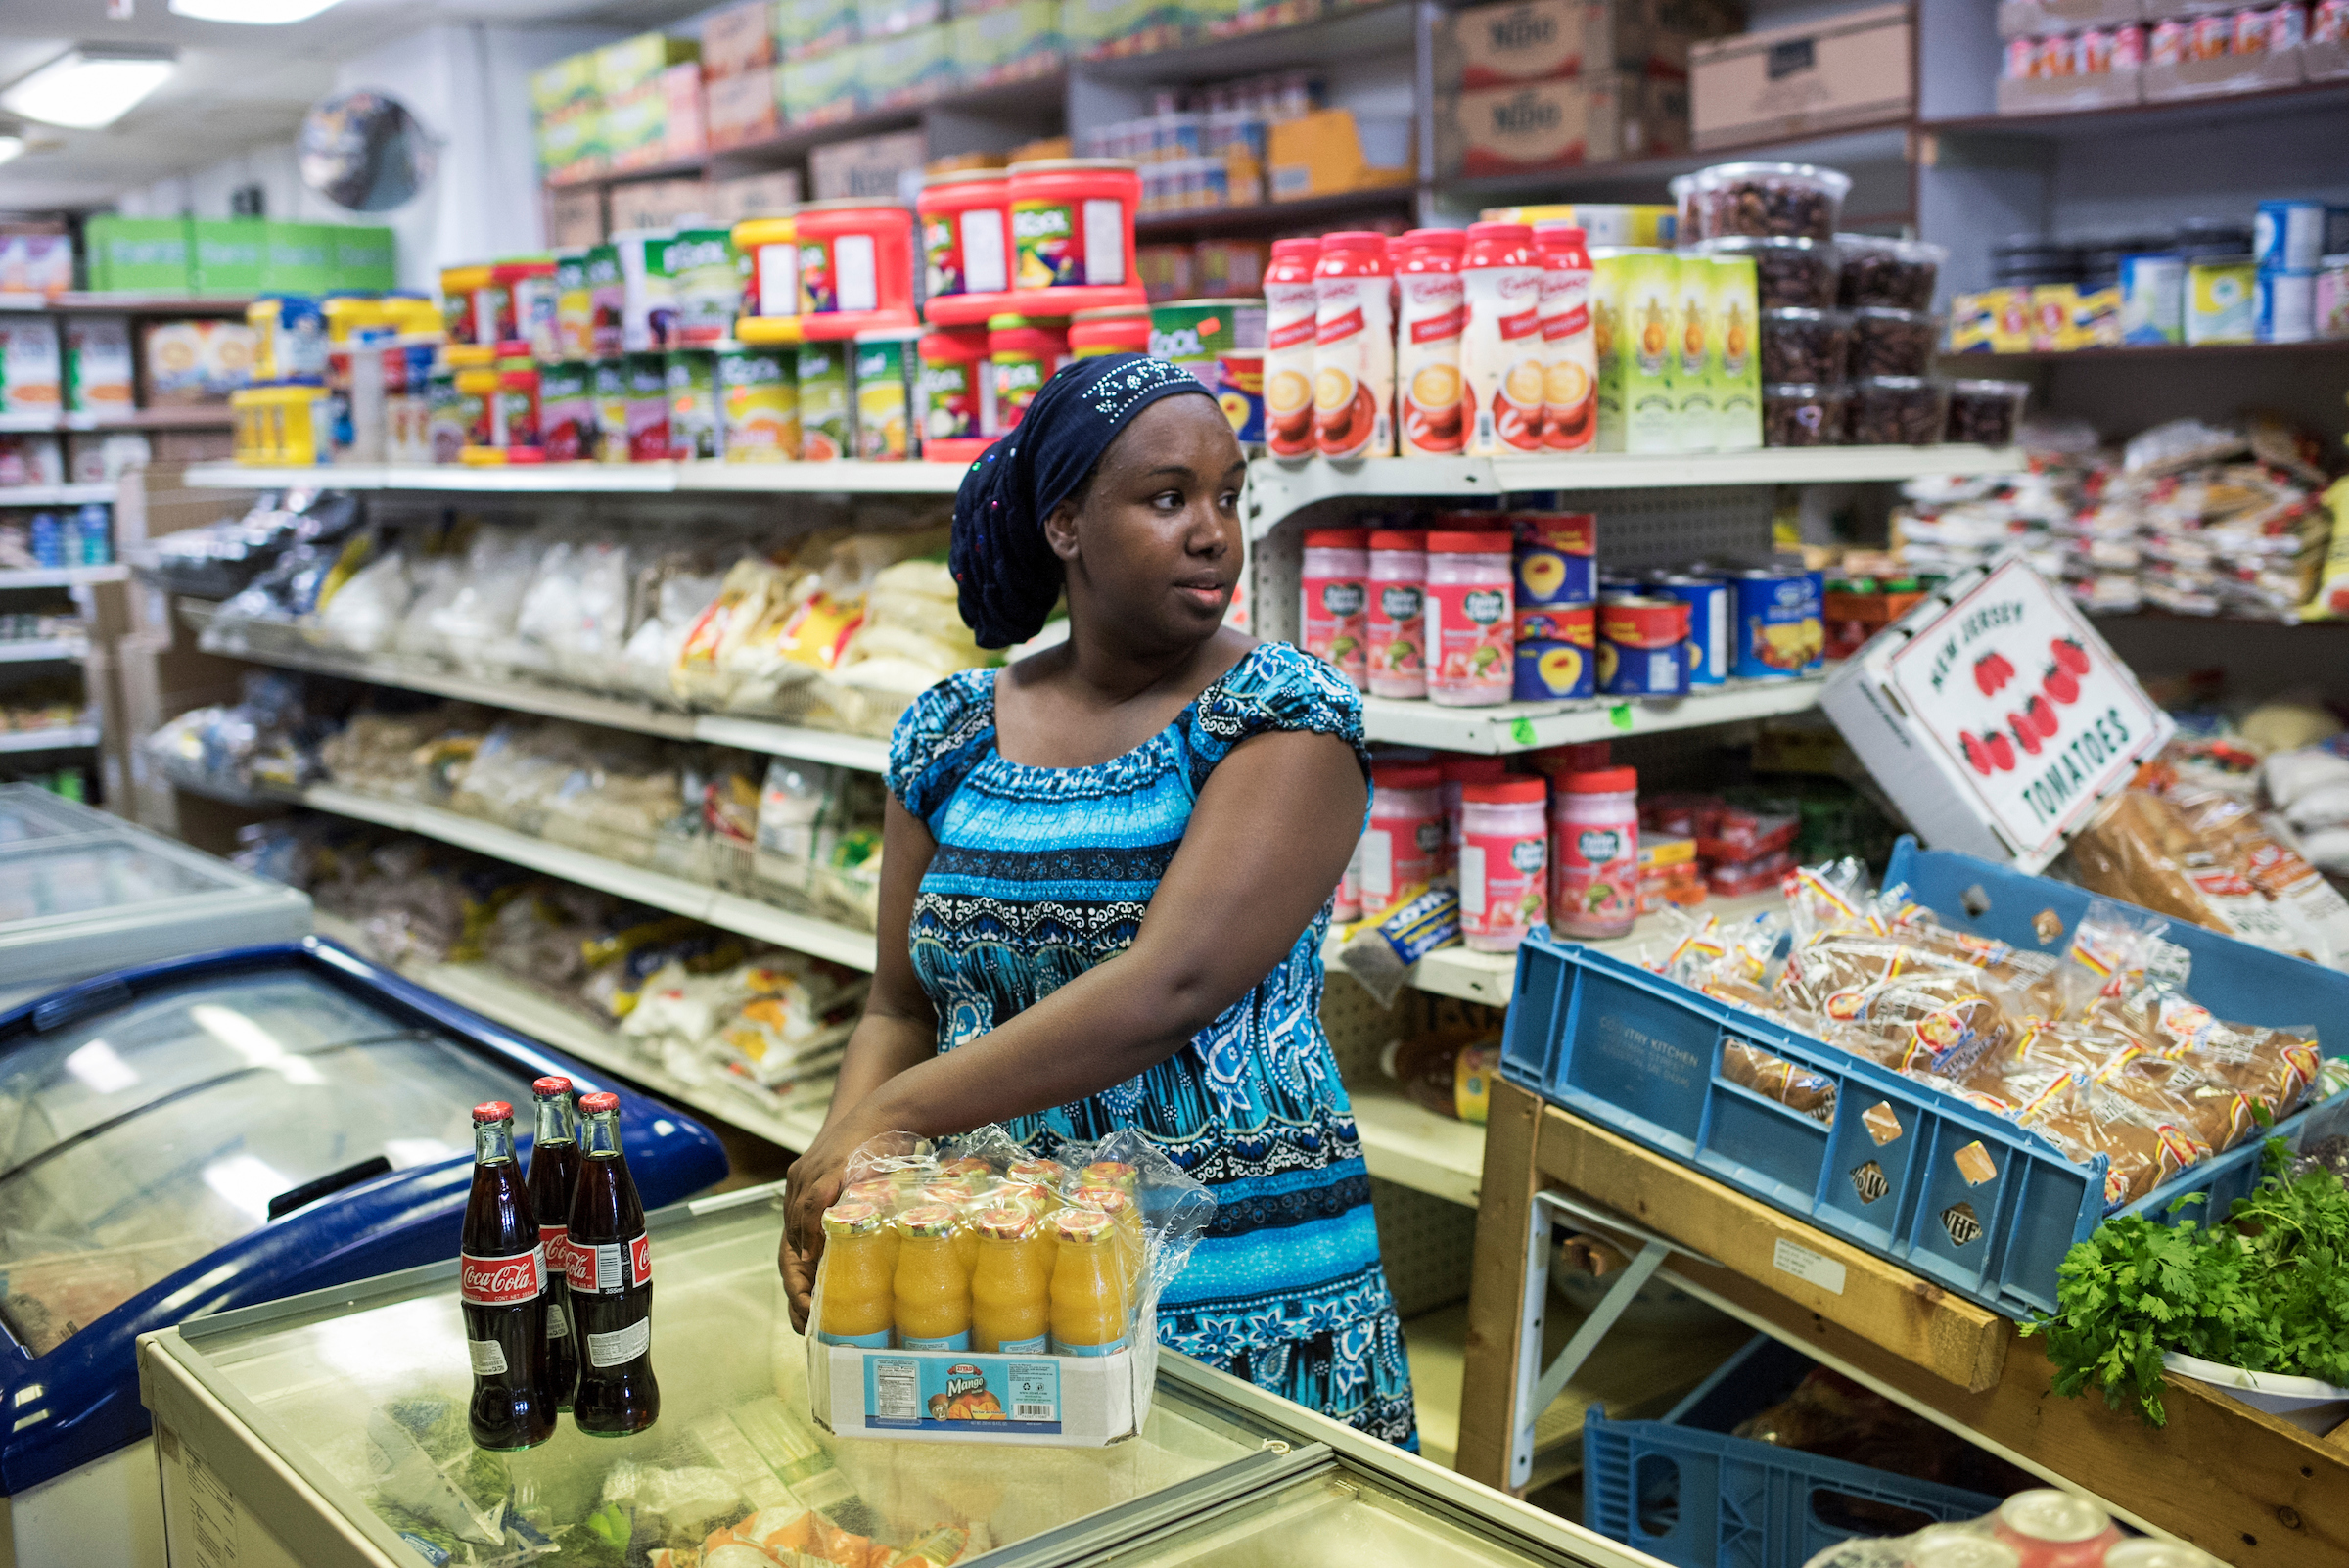 A Somali business owner stocks her store during a visit by Emily Cain, Democratic candidate for Maine's 2nd Congressional District, in Lewiston, Maine, September 8, 2016. (Tom Williams/CQ Roll Call)